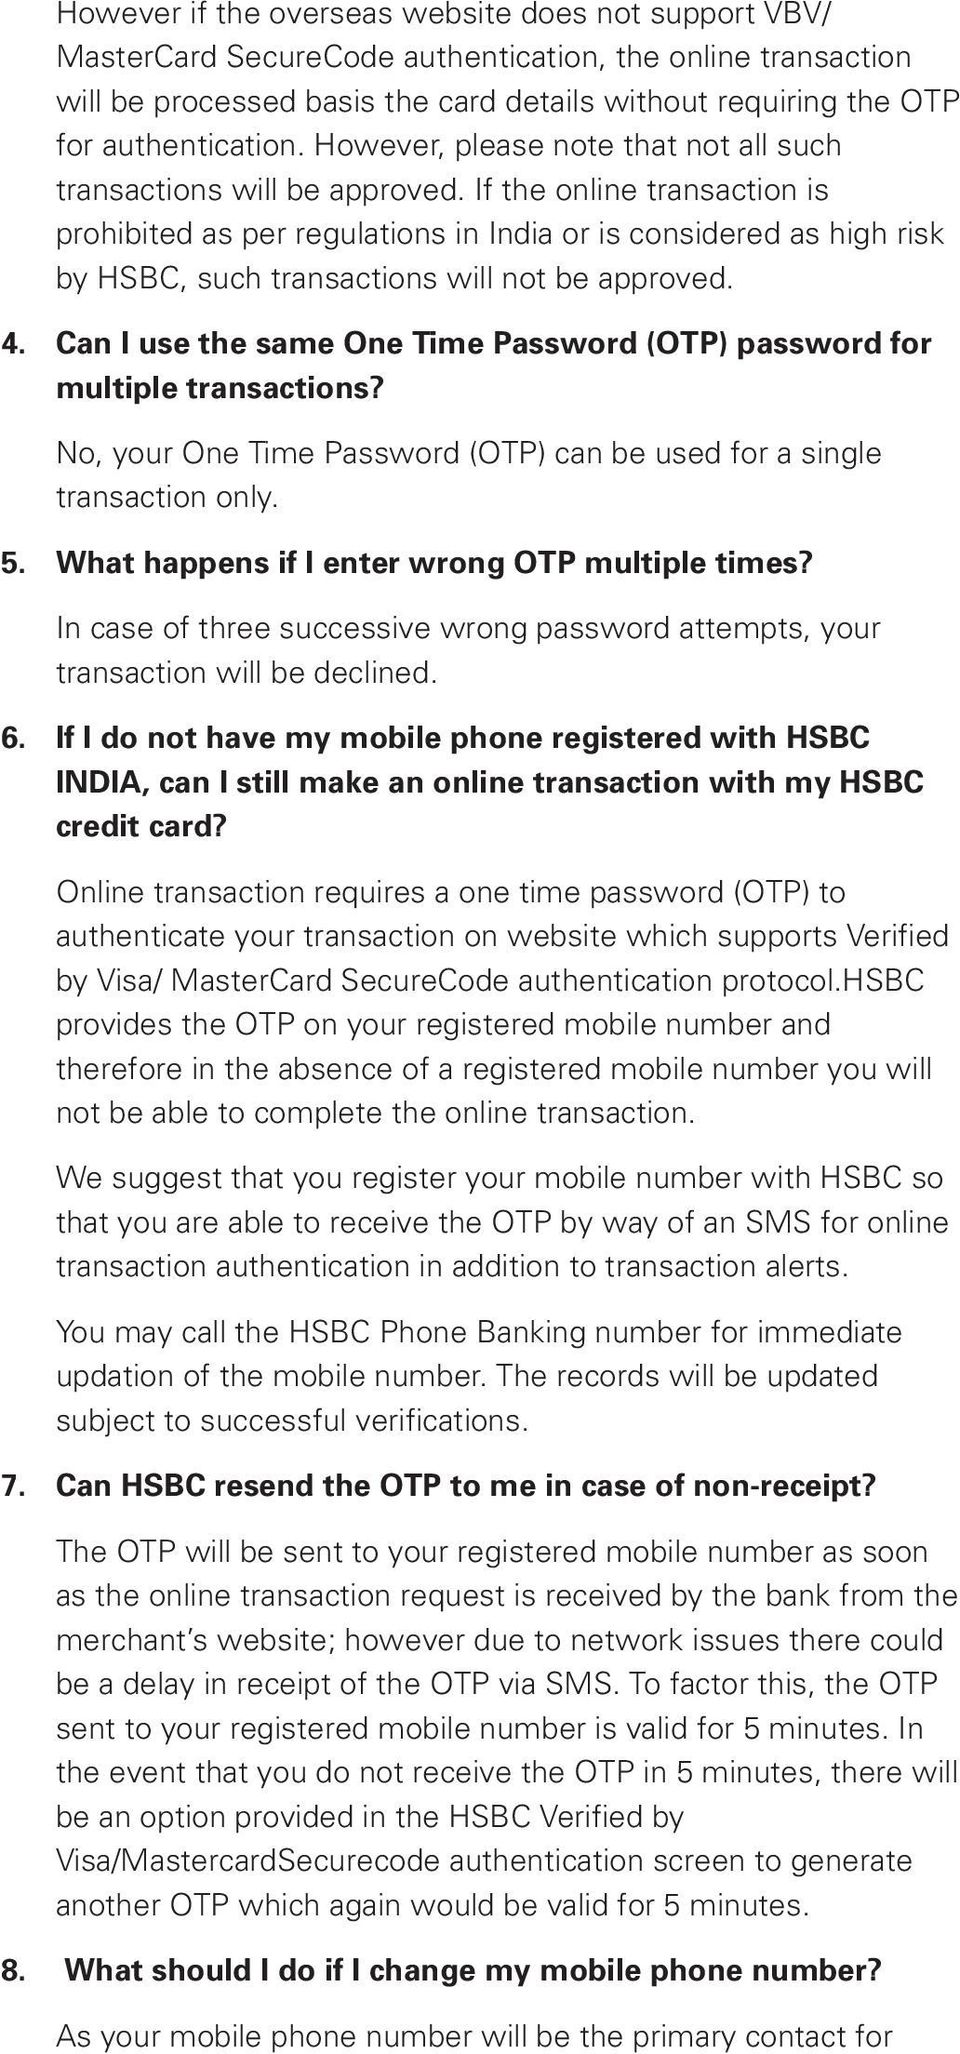 If the online transaction is prohibited as per regulations in India or is considered as high risk by HSBC, such transactions will not be approved. 4.